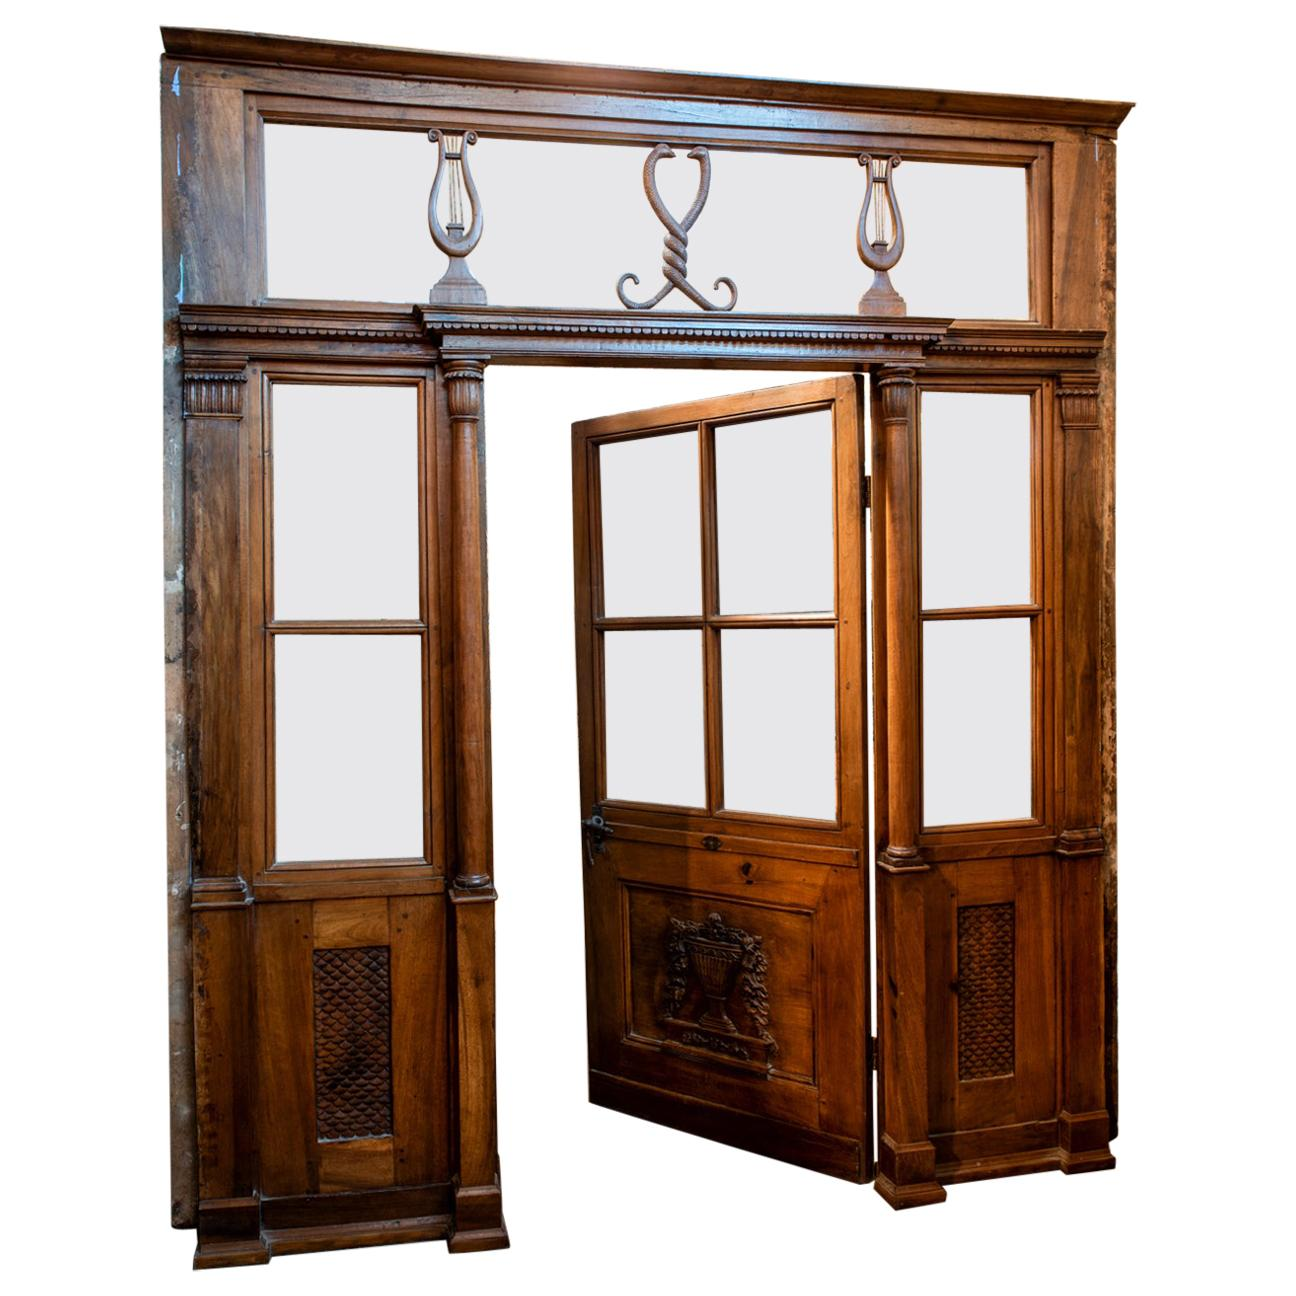 Antique Pharmacy Entrance Glass Door in Carved Walnut, 19th Century, Italy